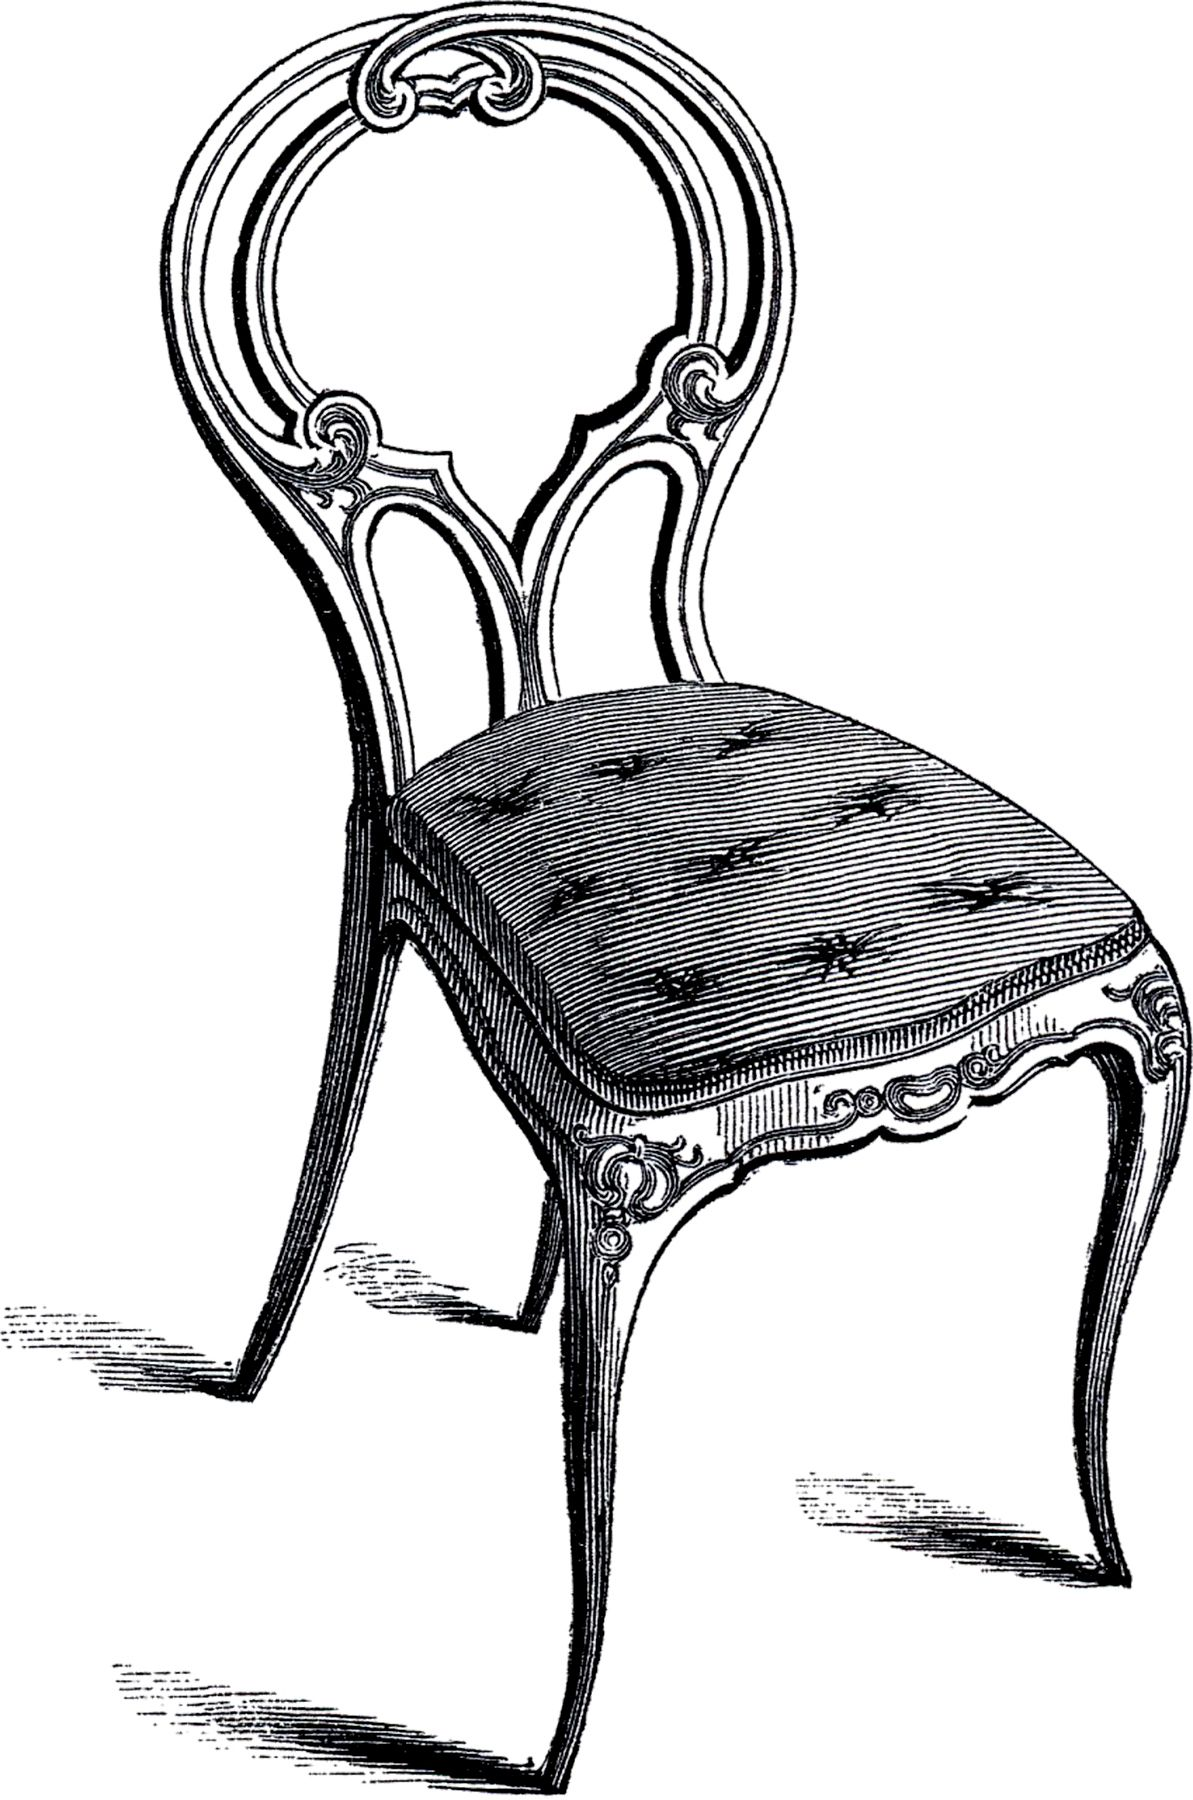 Vintage Frenchy Chair Image The Graphics Fairy Graphic Chair Art Chair Drawing Furniture